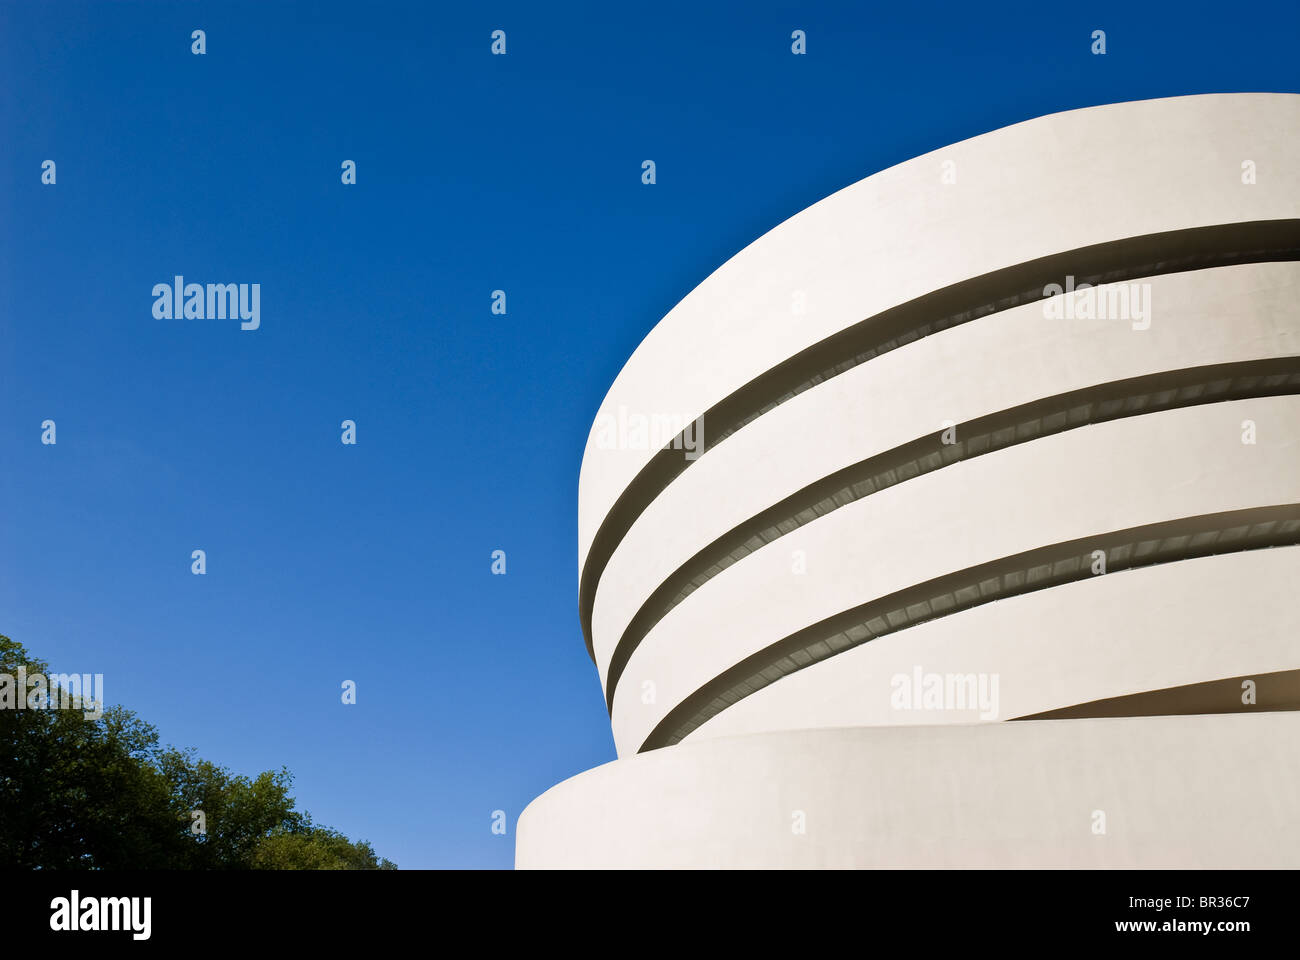 Das Guggenheim Museum, New York City. Frank Lloyd Wright, Architekt. Stockbild